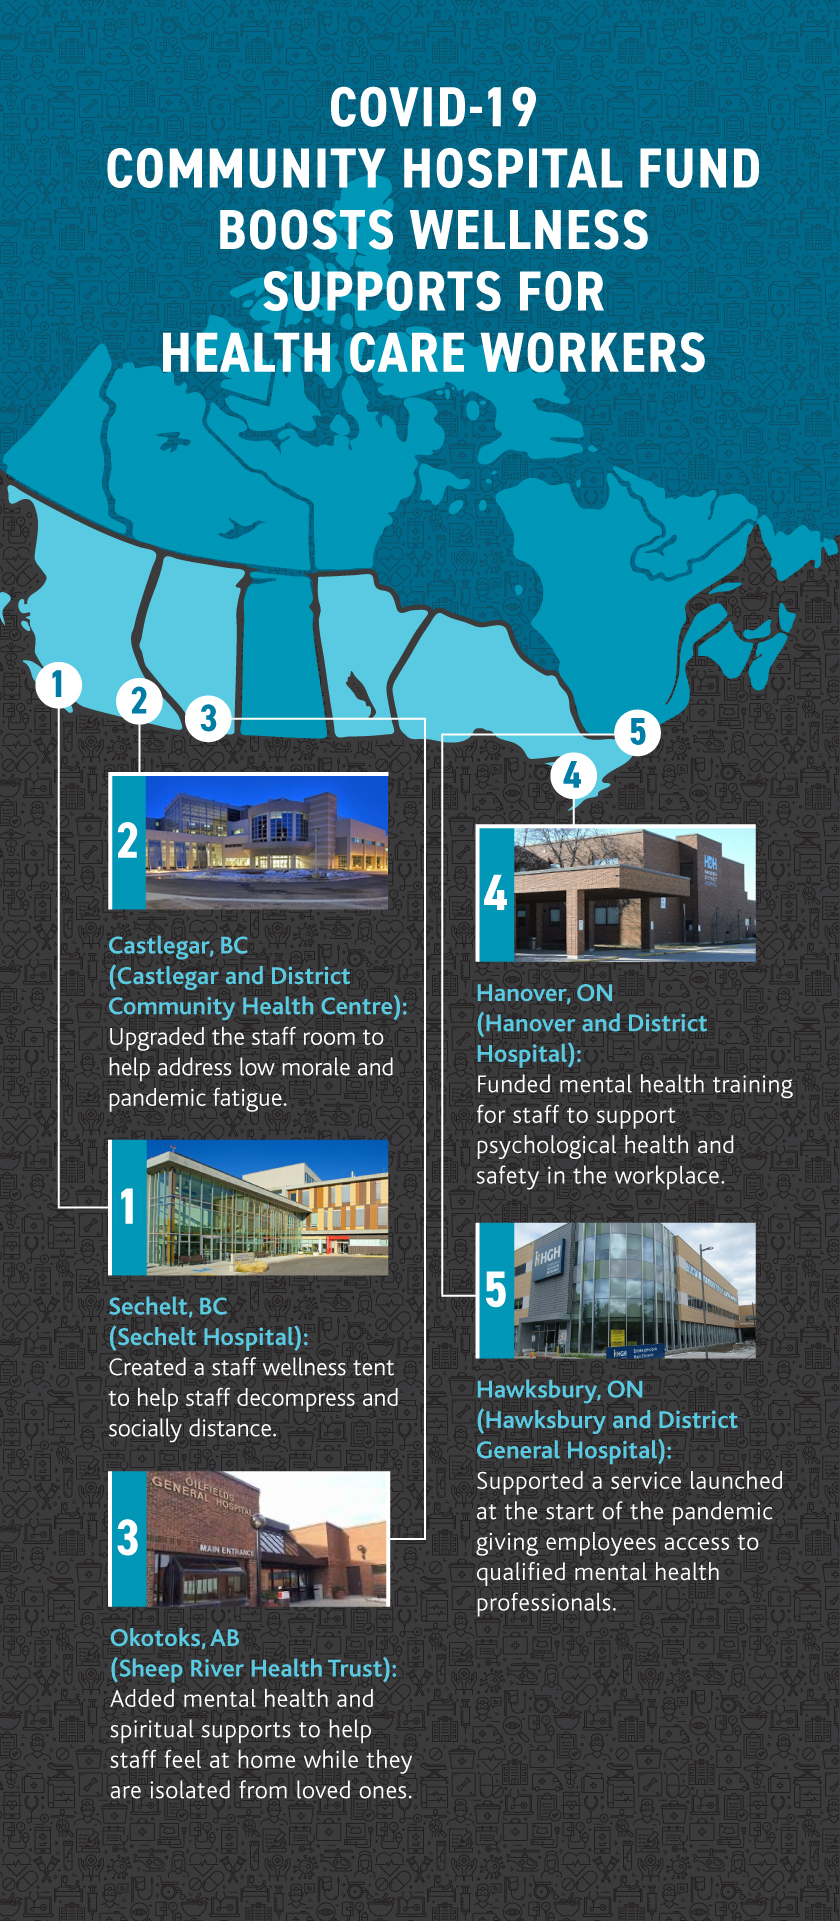 Infographic showing five hospitals across Canada implementing different wellness support programs.